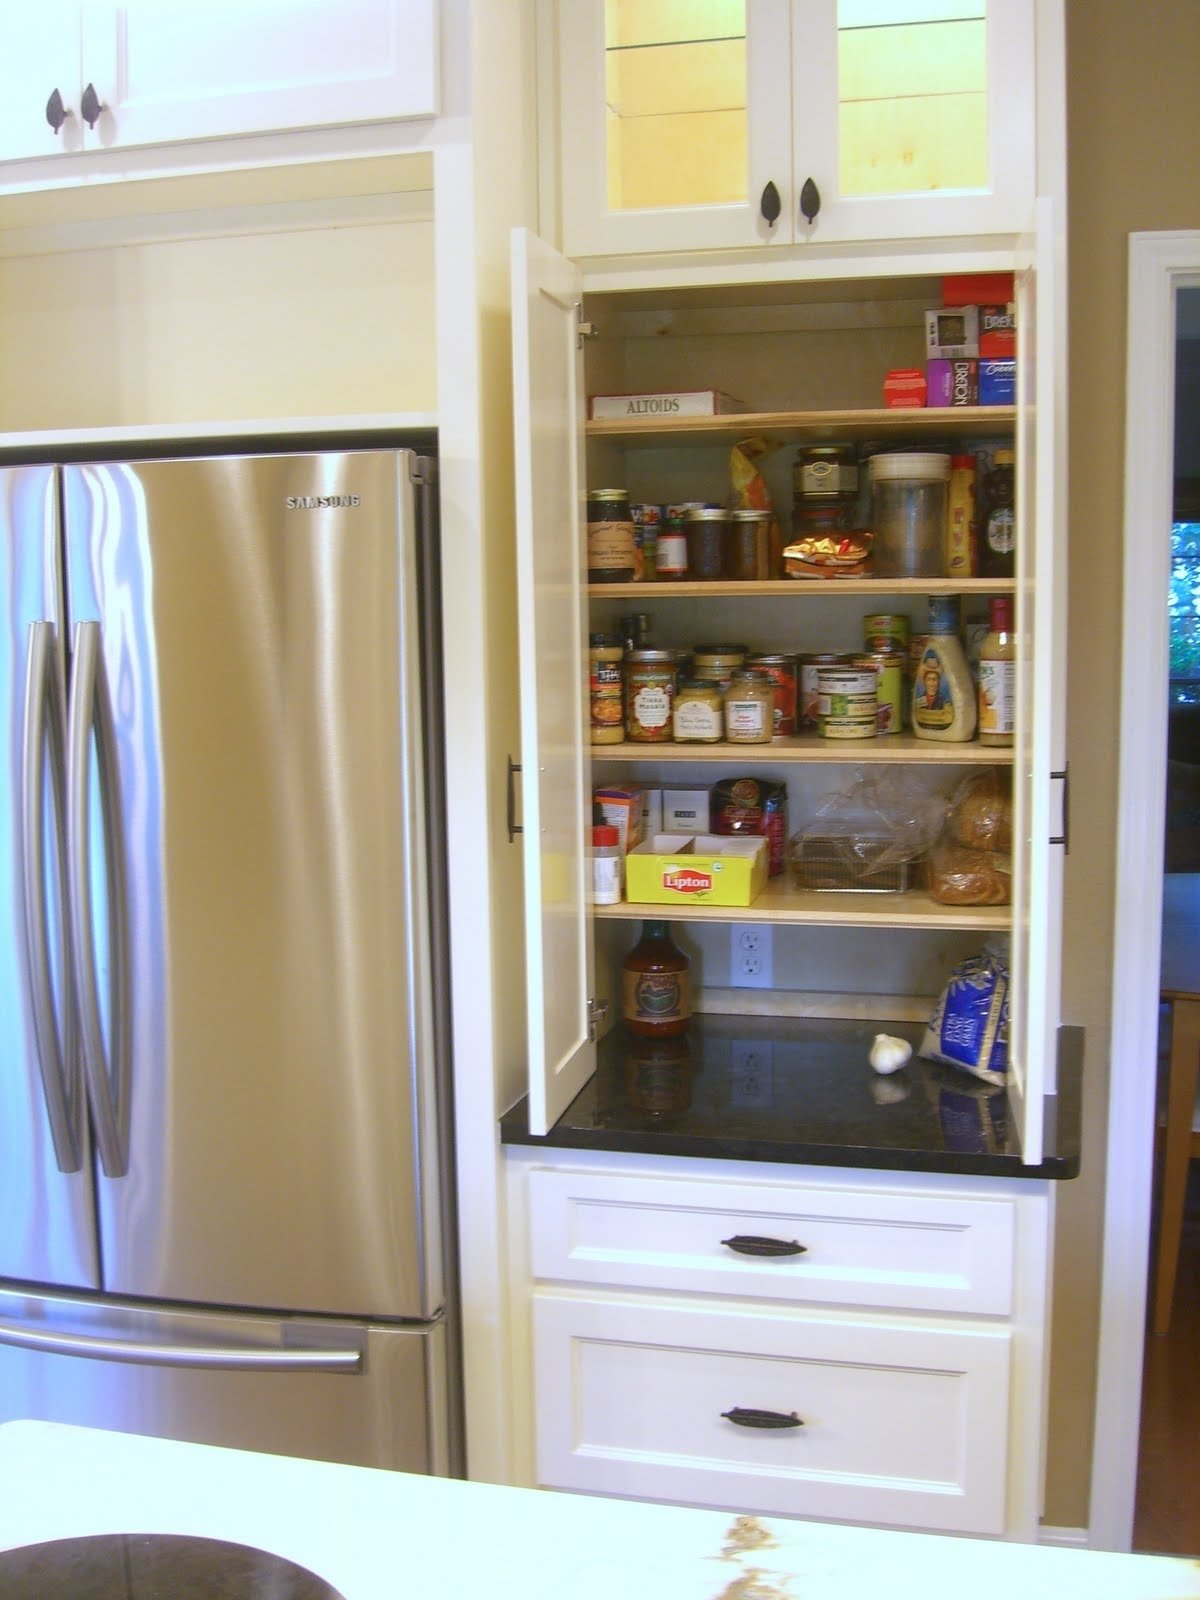 10 Wonderful Pantry Ideas For Small Kitchen corner pantry ideas for small kitchens e280a2 kitchen appliances and pantry 2020